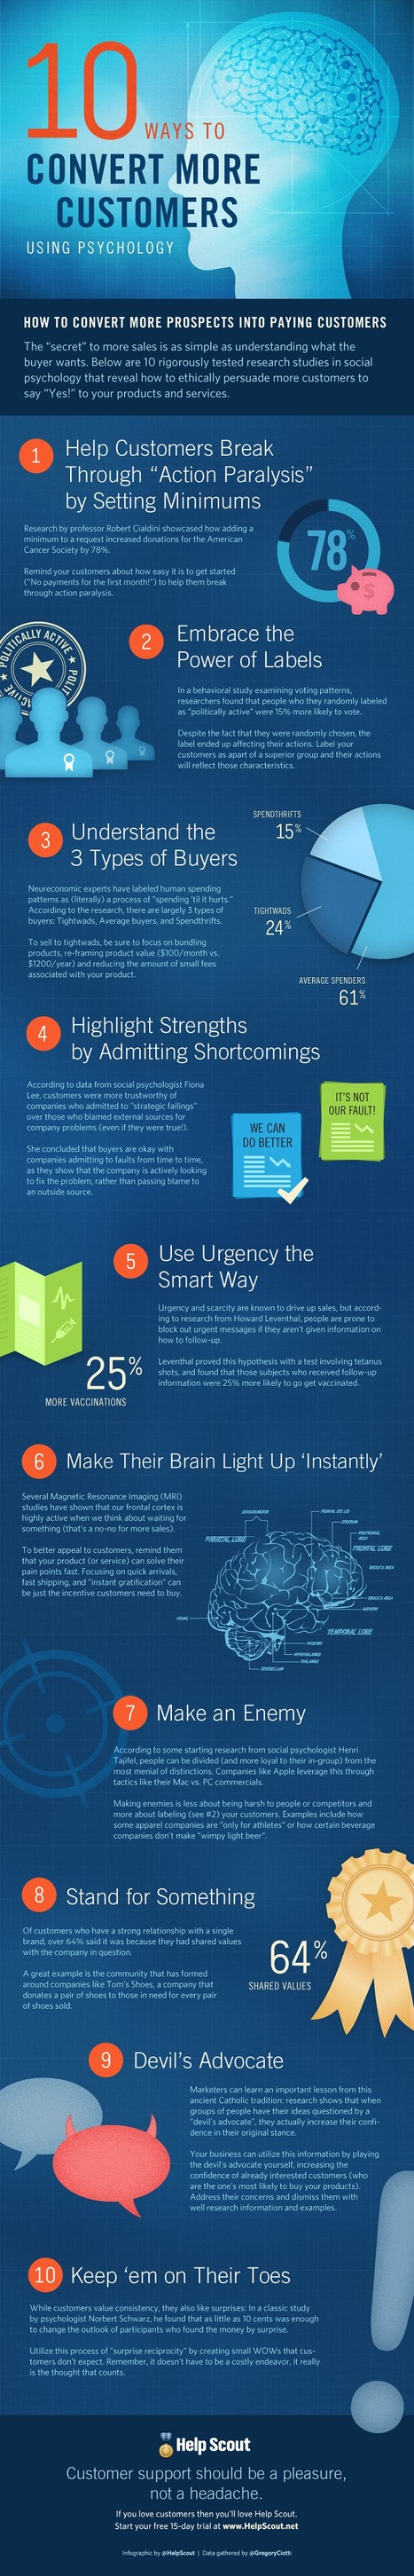 10 Ways to Convert More Customers With Psychology [INFOGRAPHIC] | Market to real people | Scoop.it